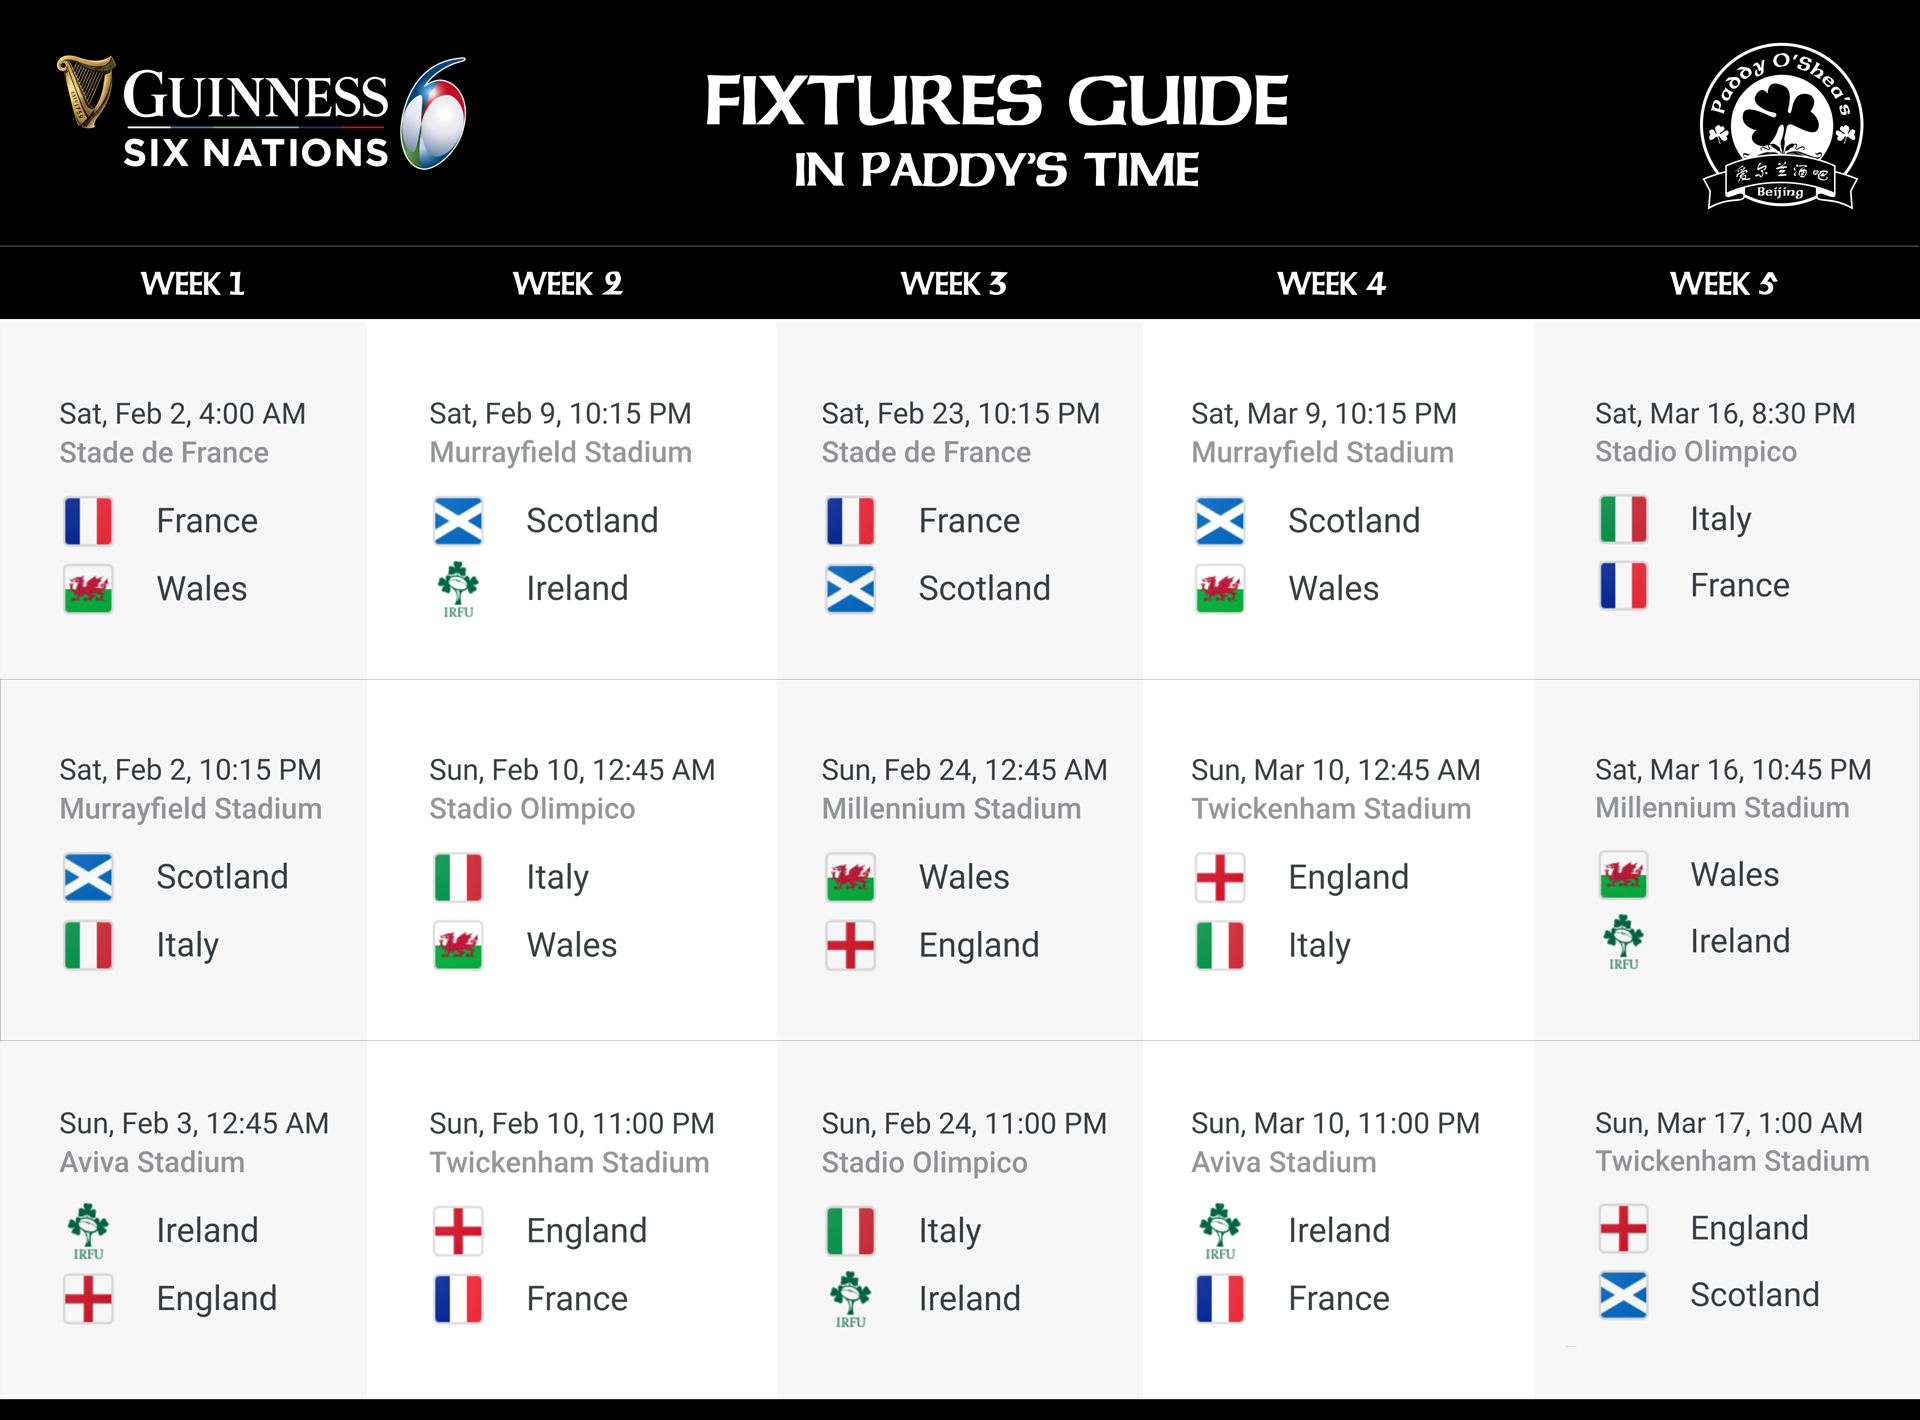 Below are the fixtures, dates and kick off times of the Guinness 6 Nations for 2019. (Click to enlarge)